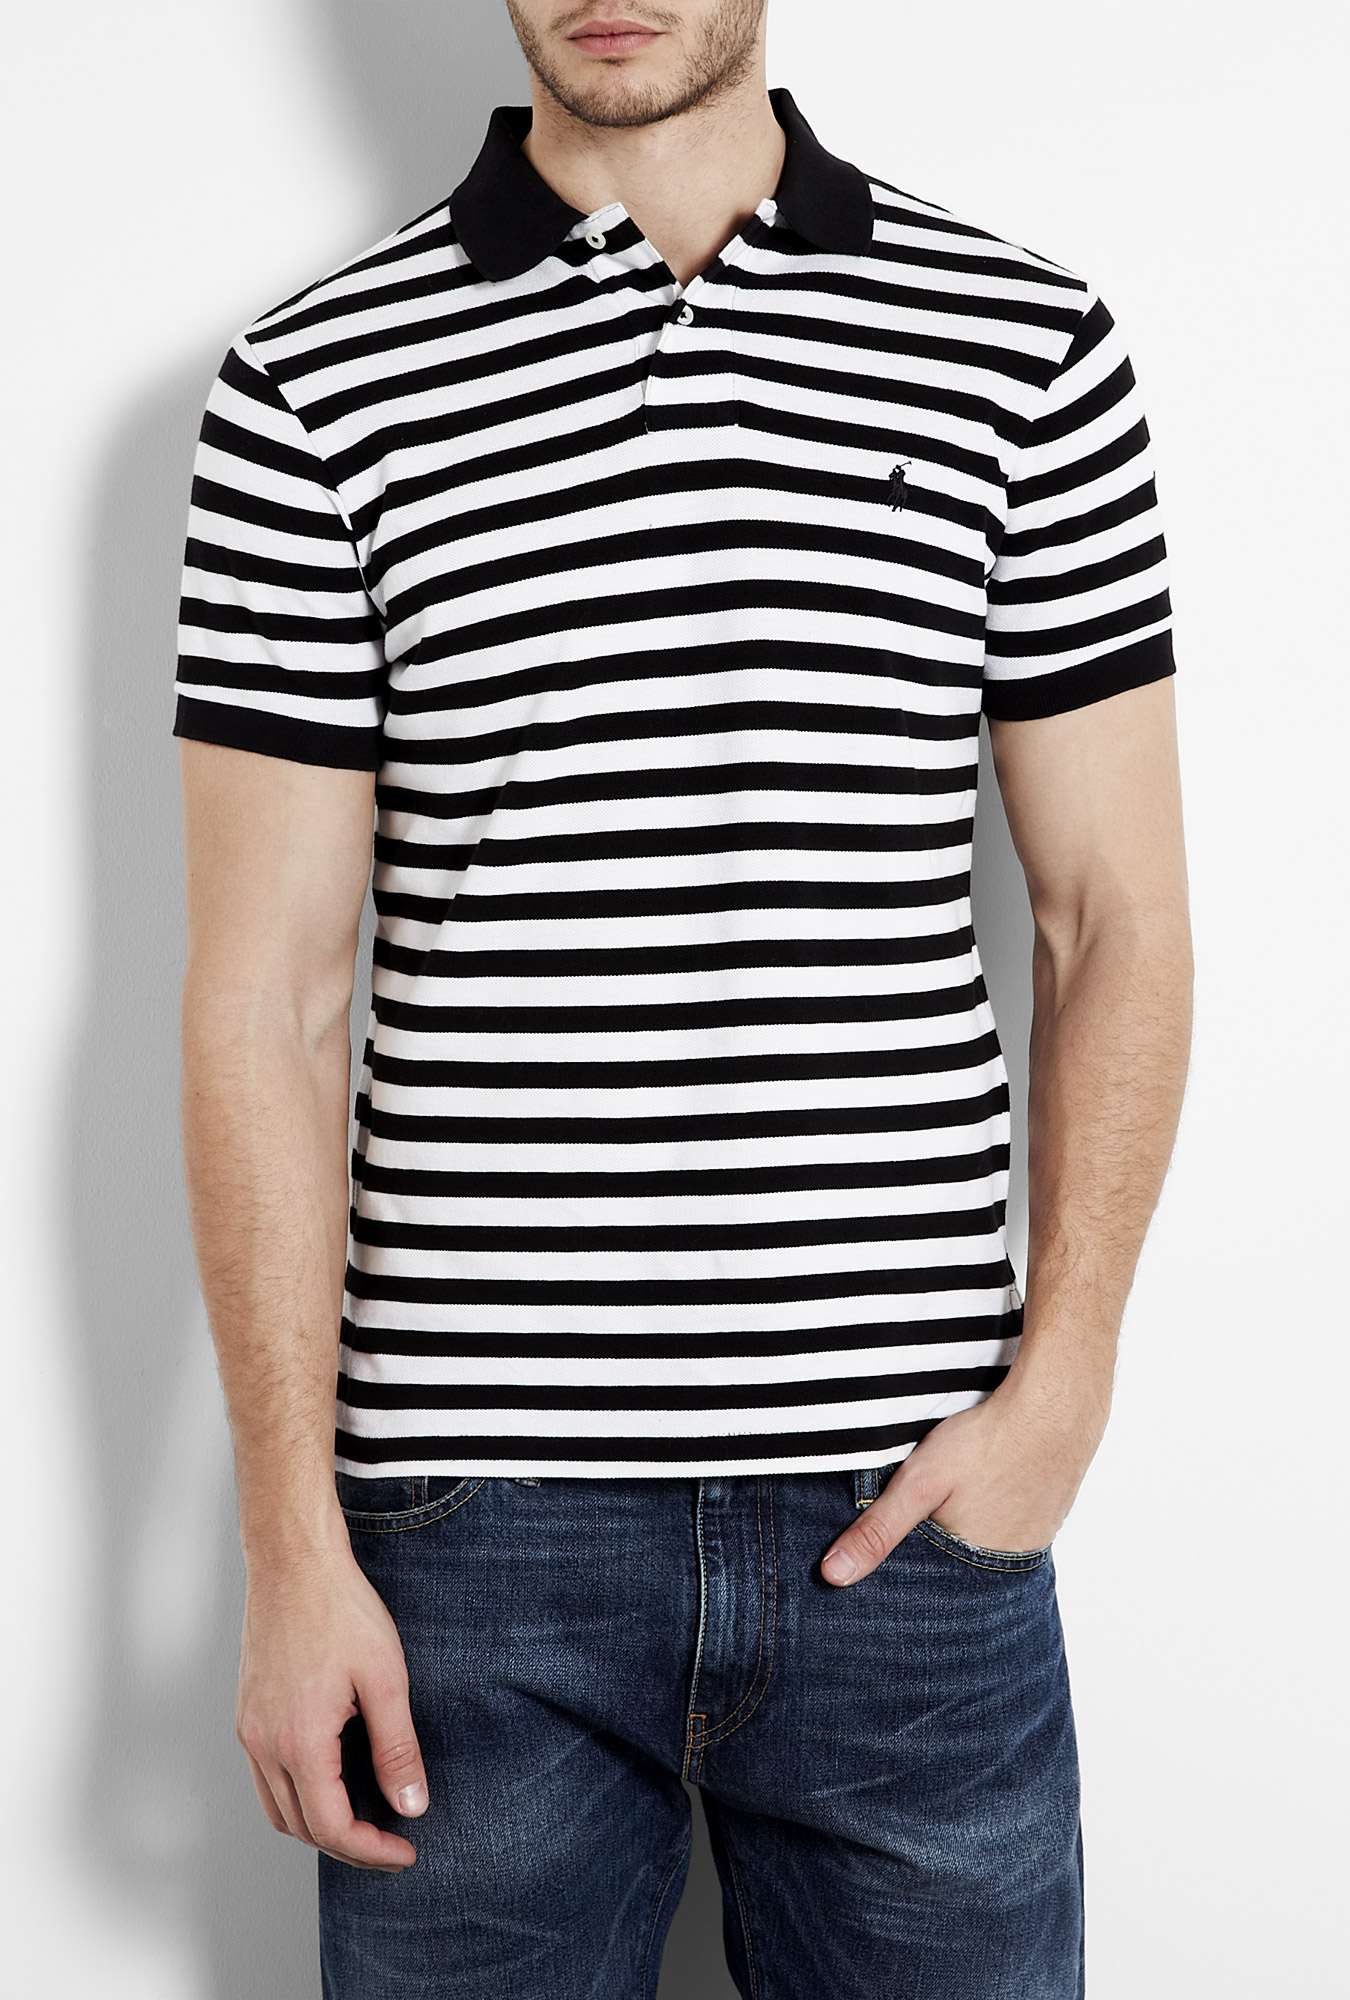 Cool and casual, this Black polo T-shirt with white stripes from Fanideaz will elevate your summer style to new heights, owing to its loose silhouette and nautical stripes. It has a two button placket, contrast colour stripes and full sleeves with elasticated cuffs that .